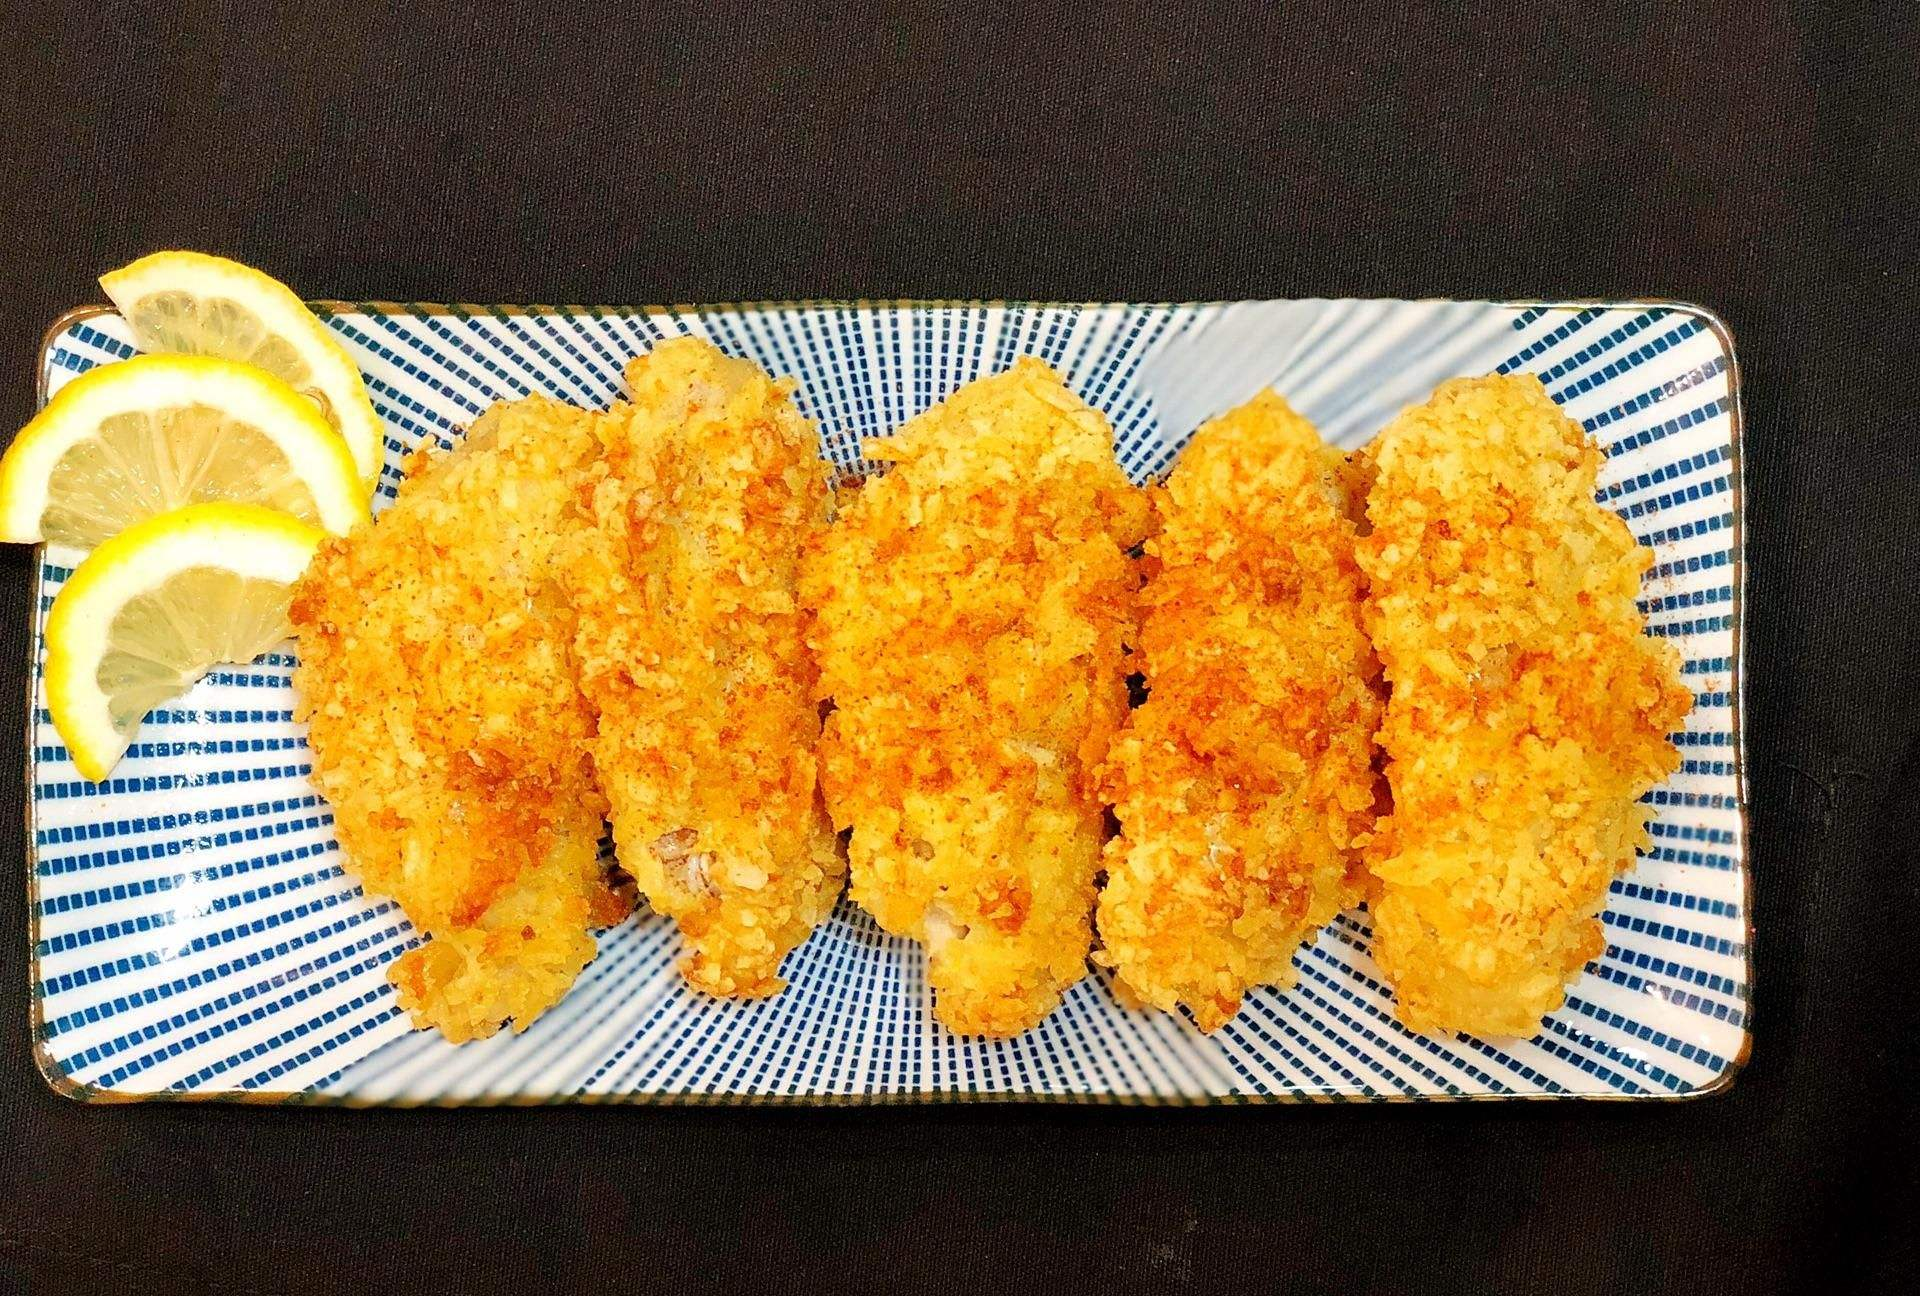 convection oven baked chicken